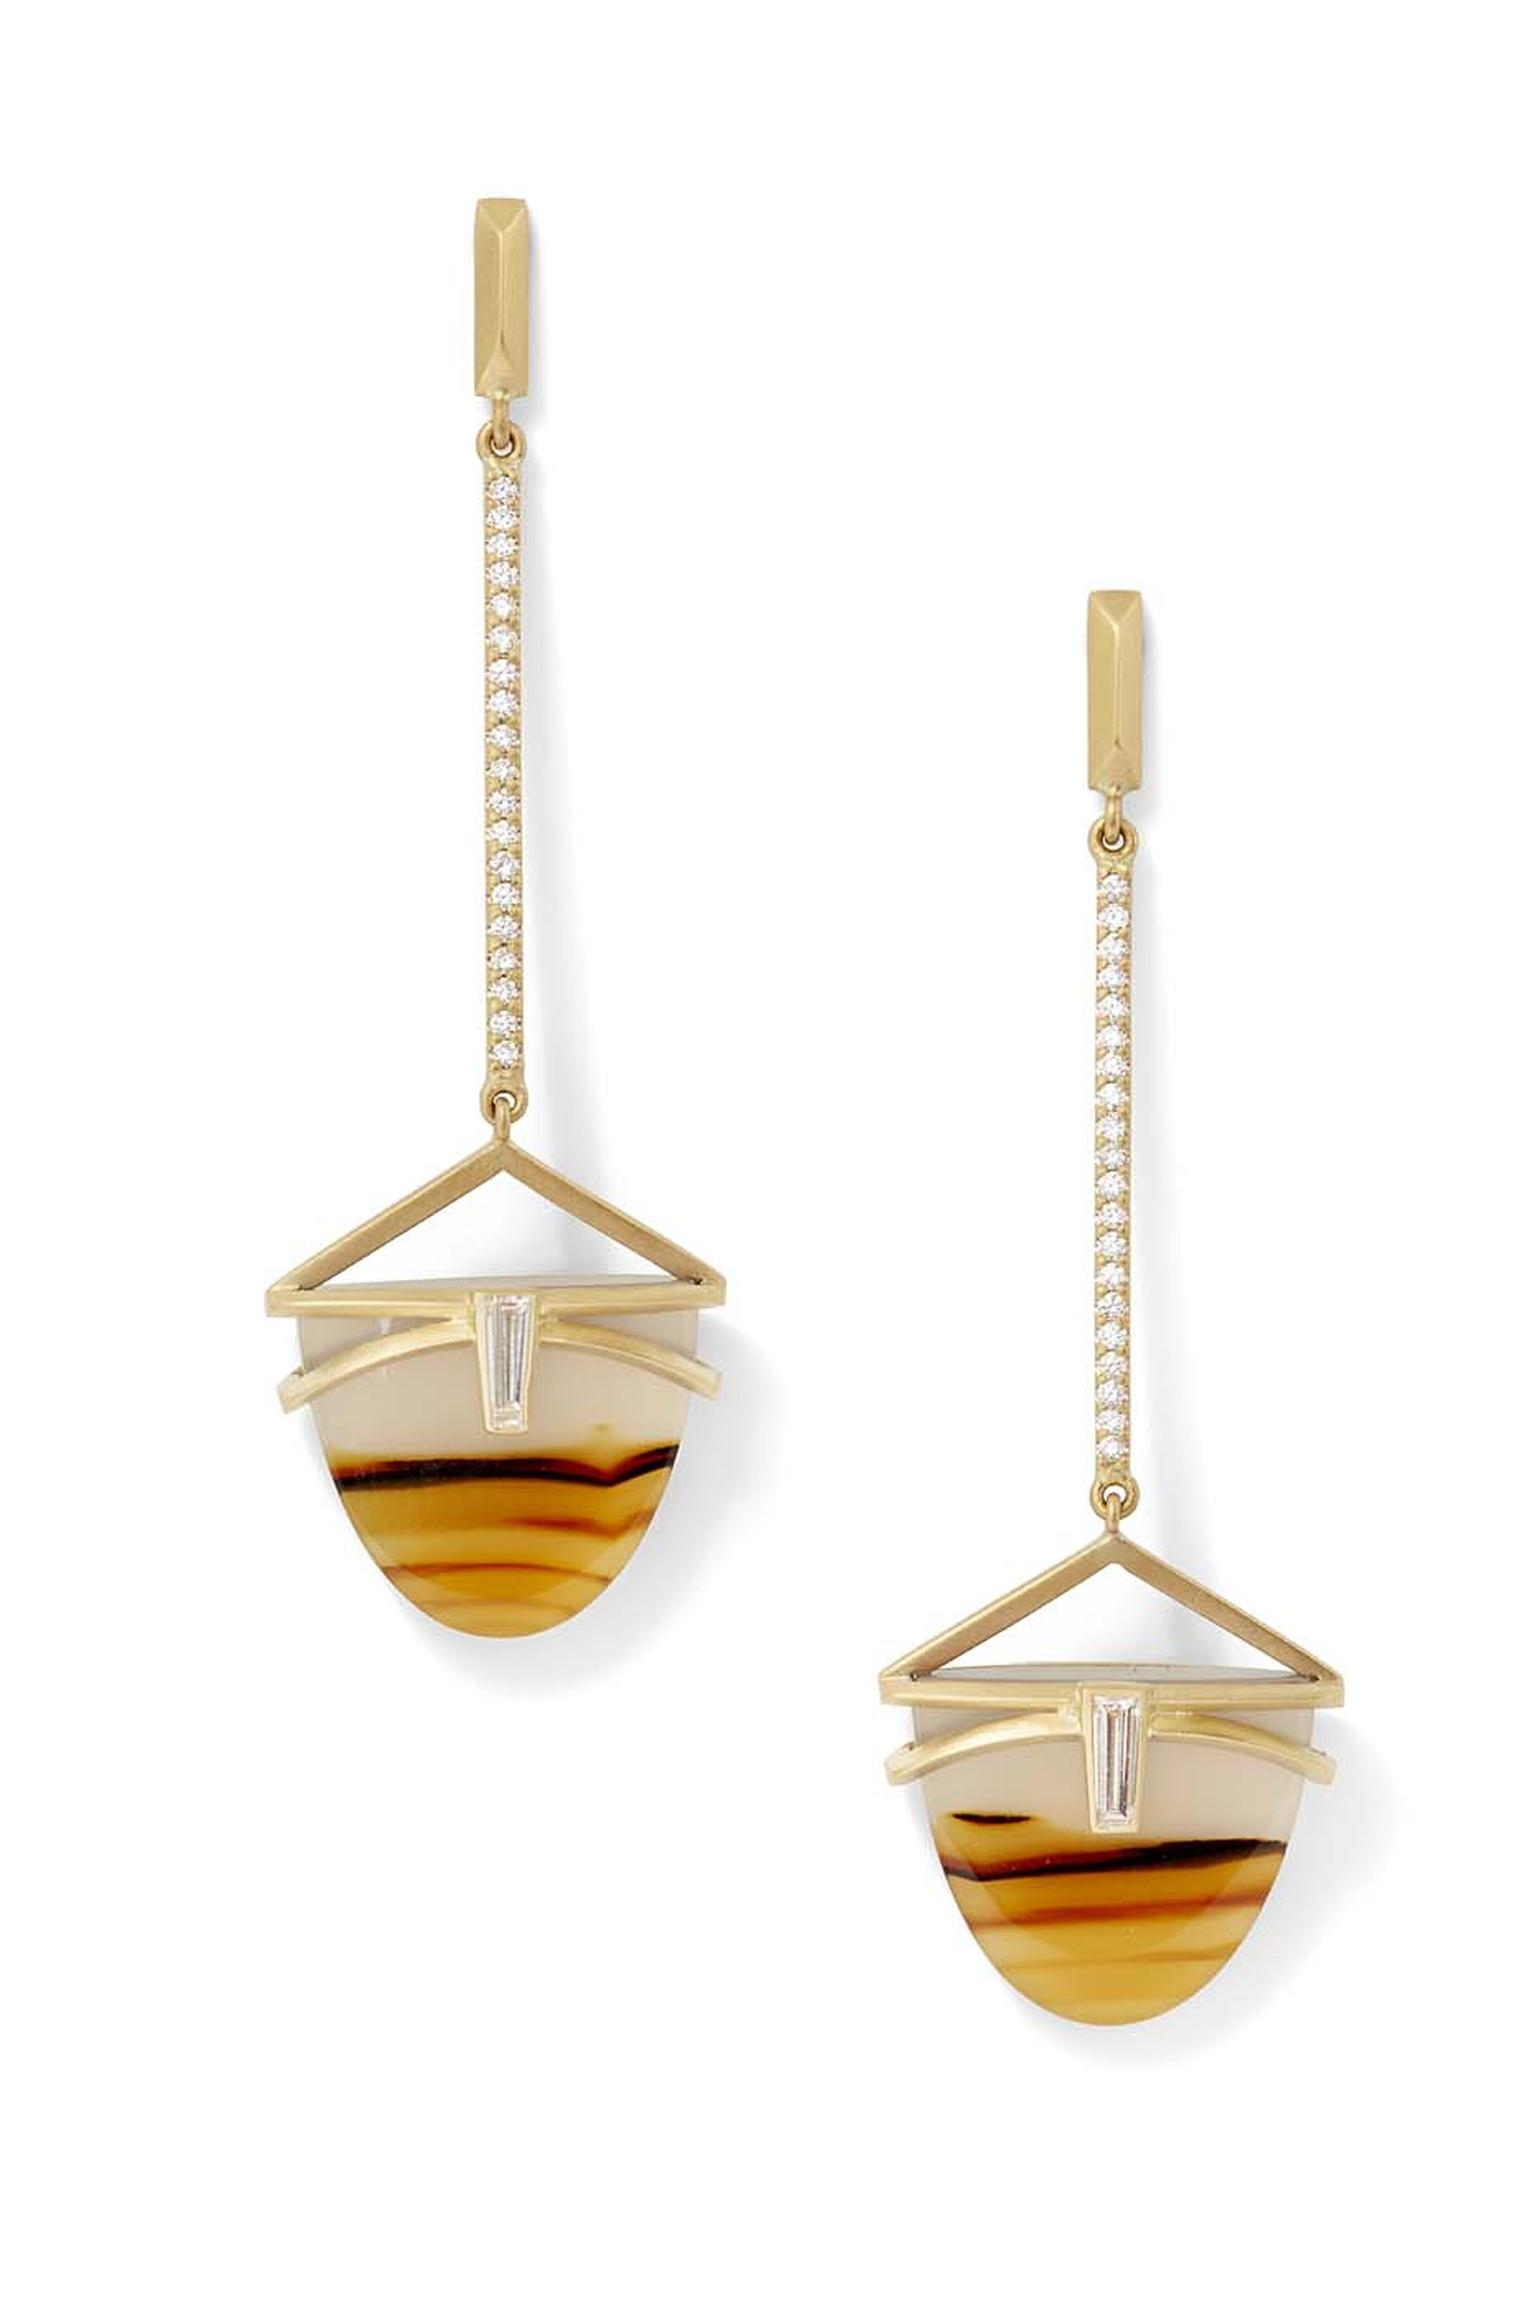 Monique Péan's Montana striped agate earrings in matte gold, from the Seto collection, are inlaid with diamond baguettes and inspired by the warm amber shades of a sunset.